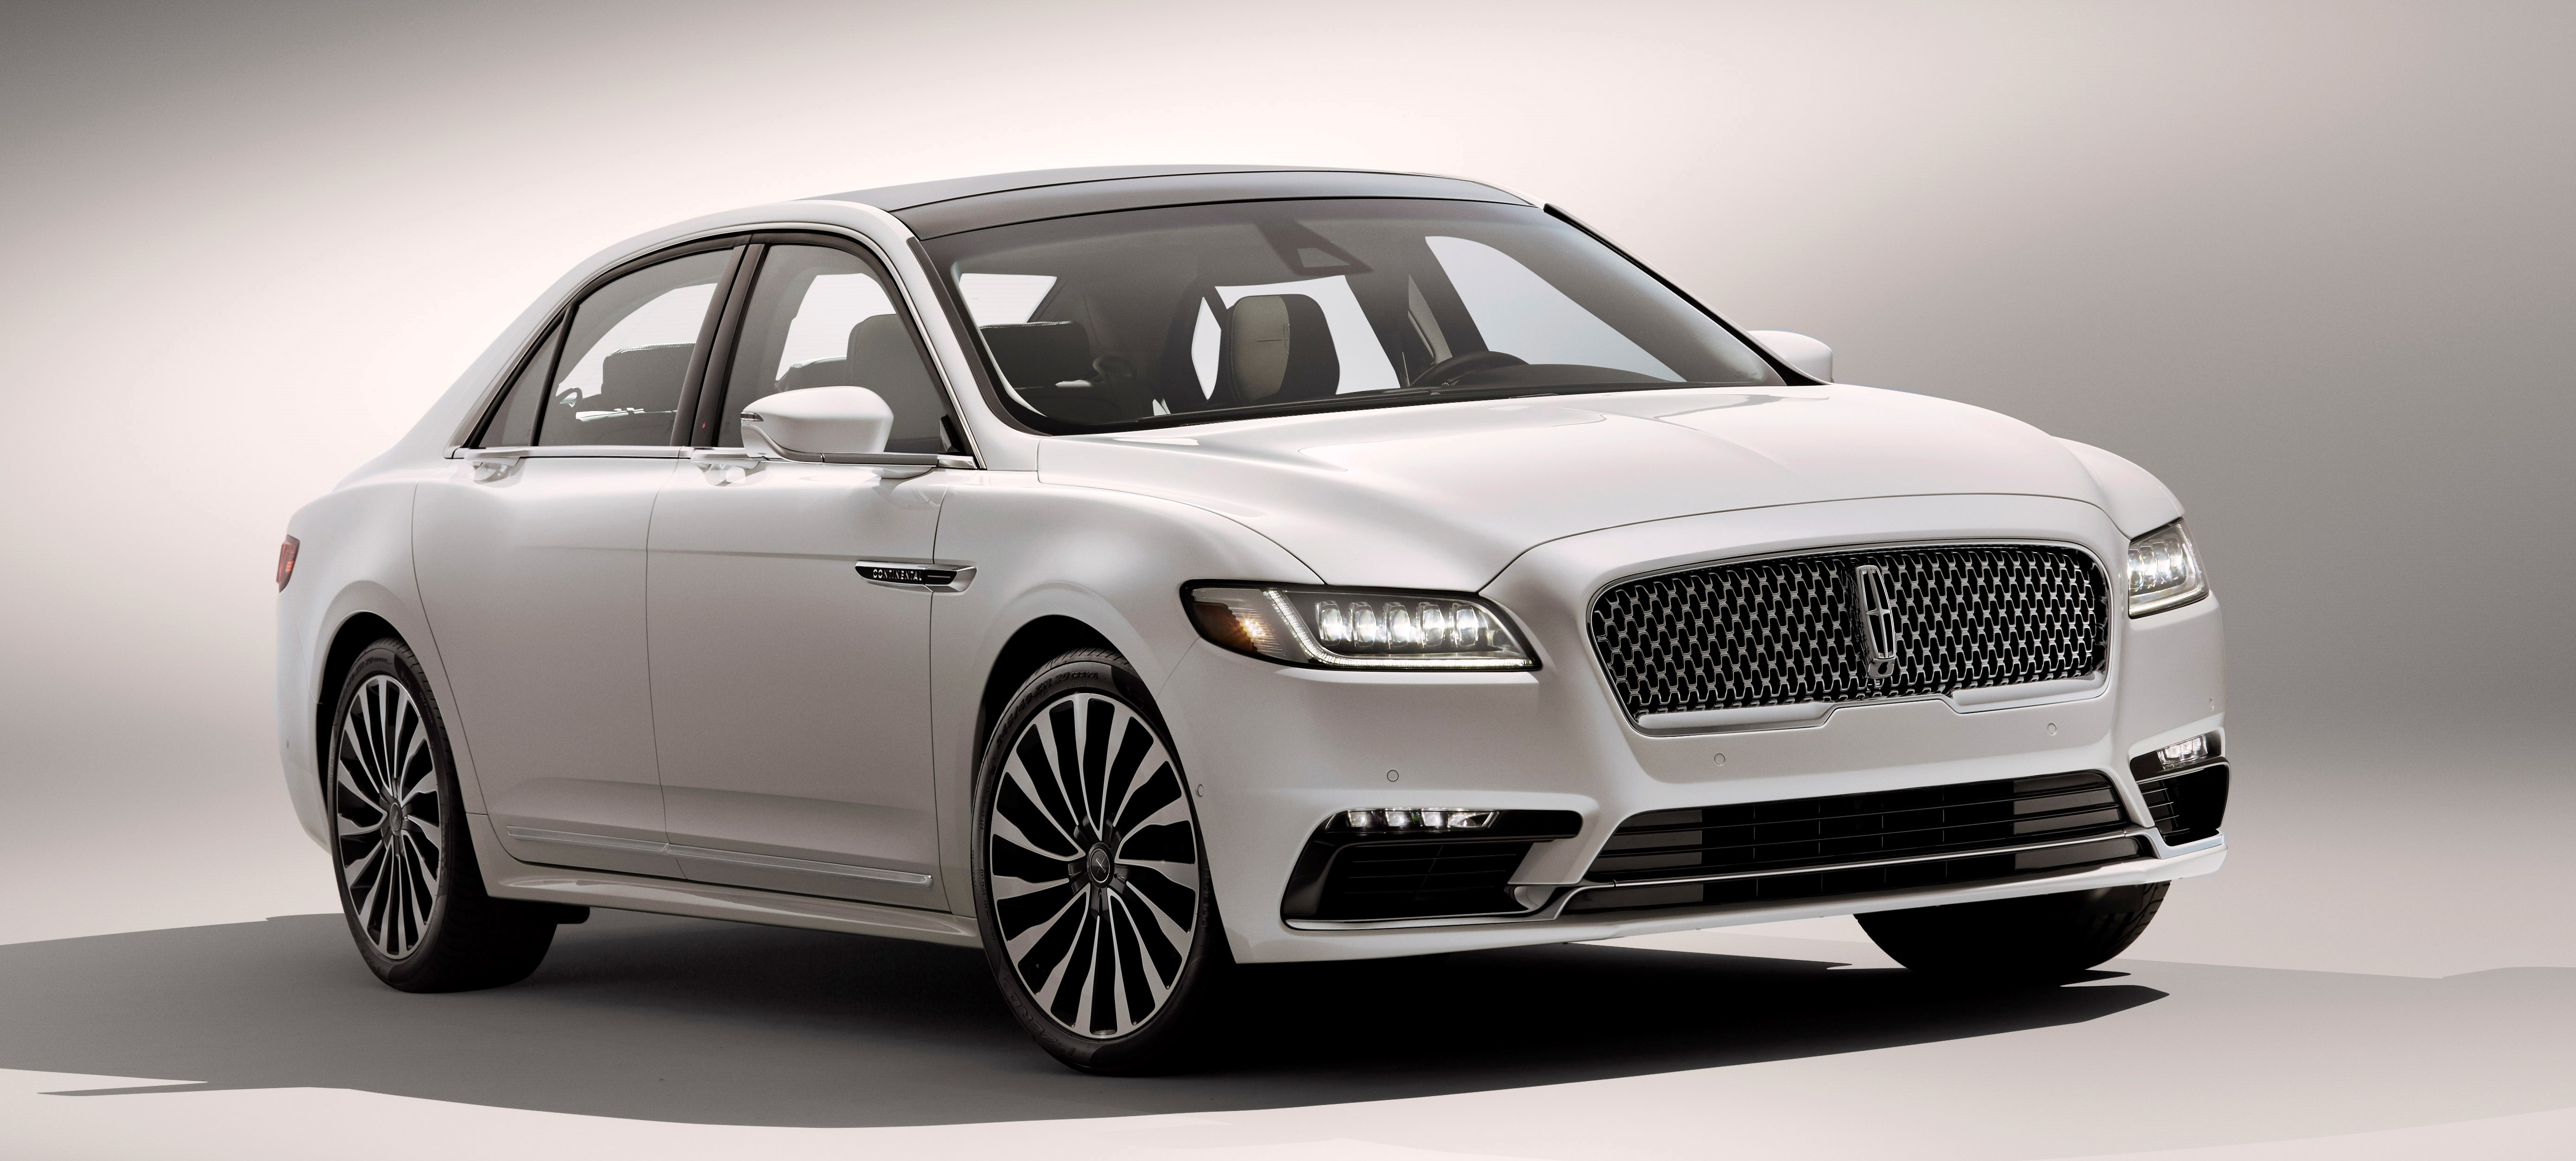 pa dealership black label new sayre lincoln mkz ford in williams reviews charity customer htm